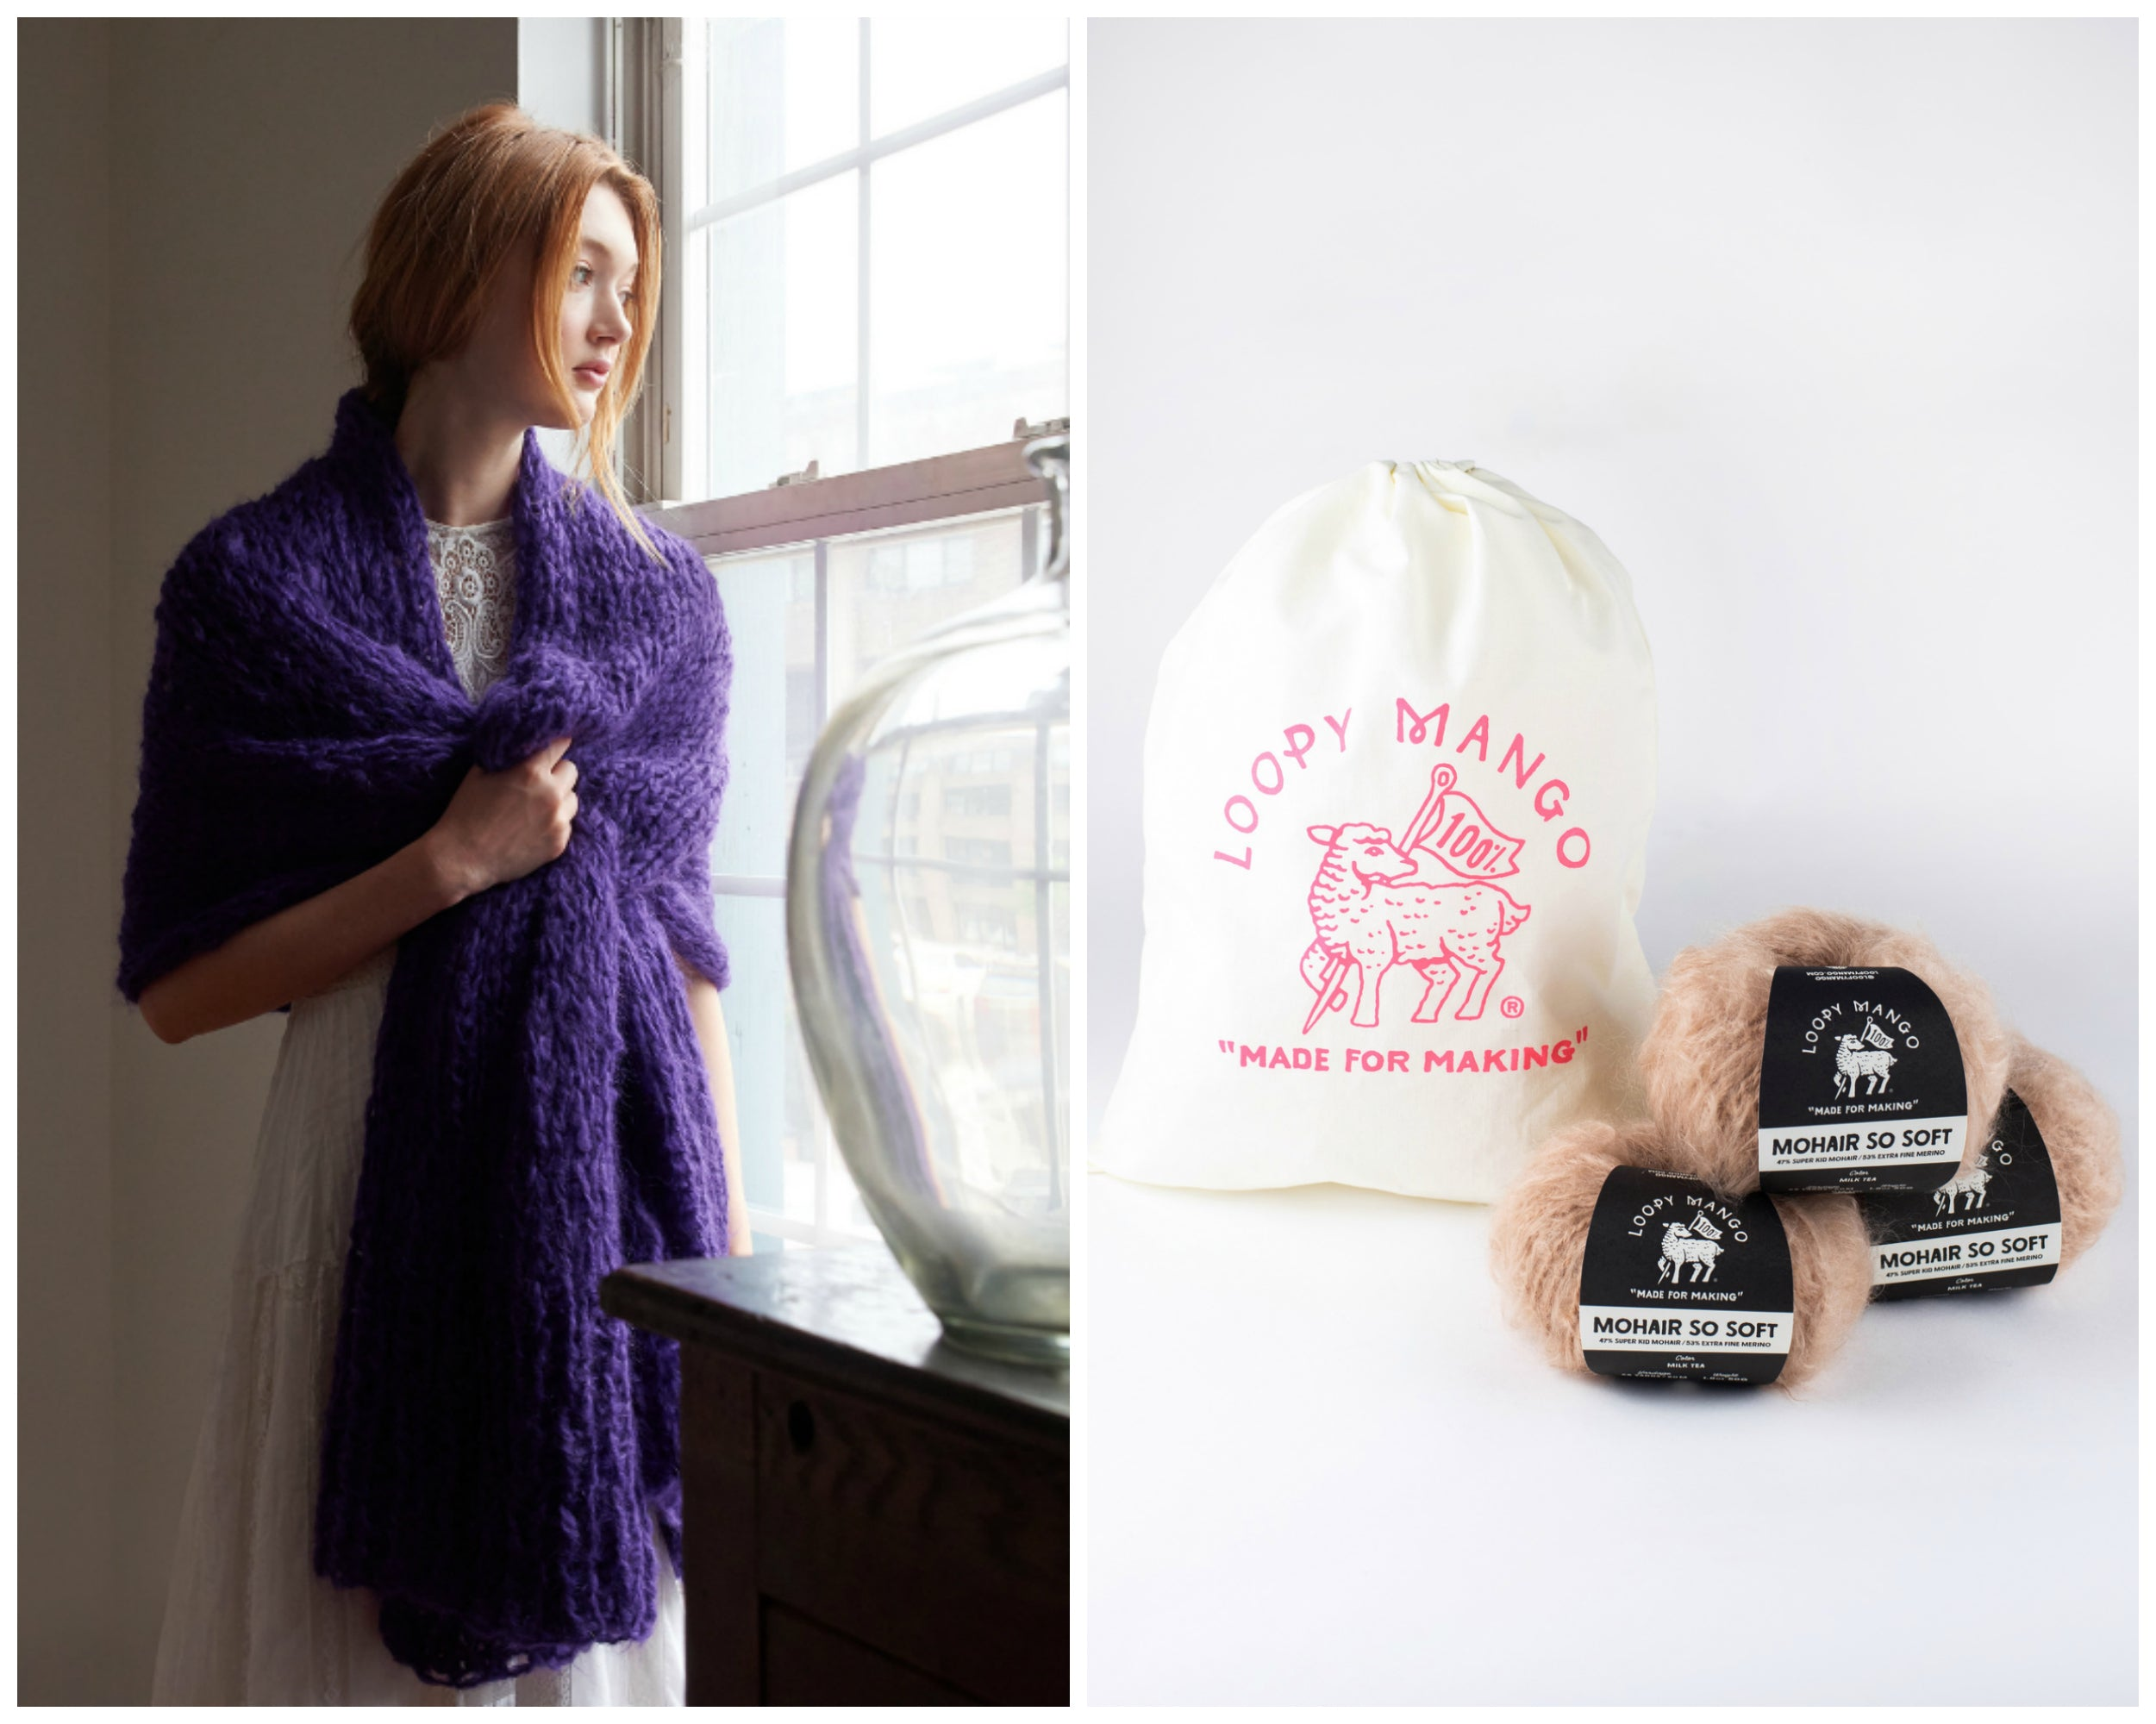 DIY Kit - Wrap - Mohair So Soft